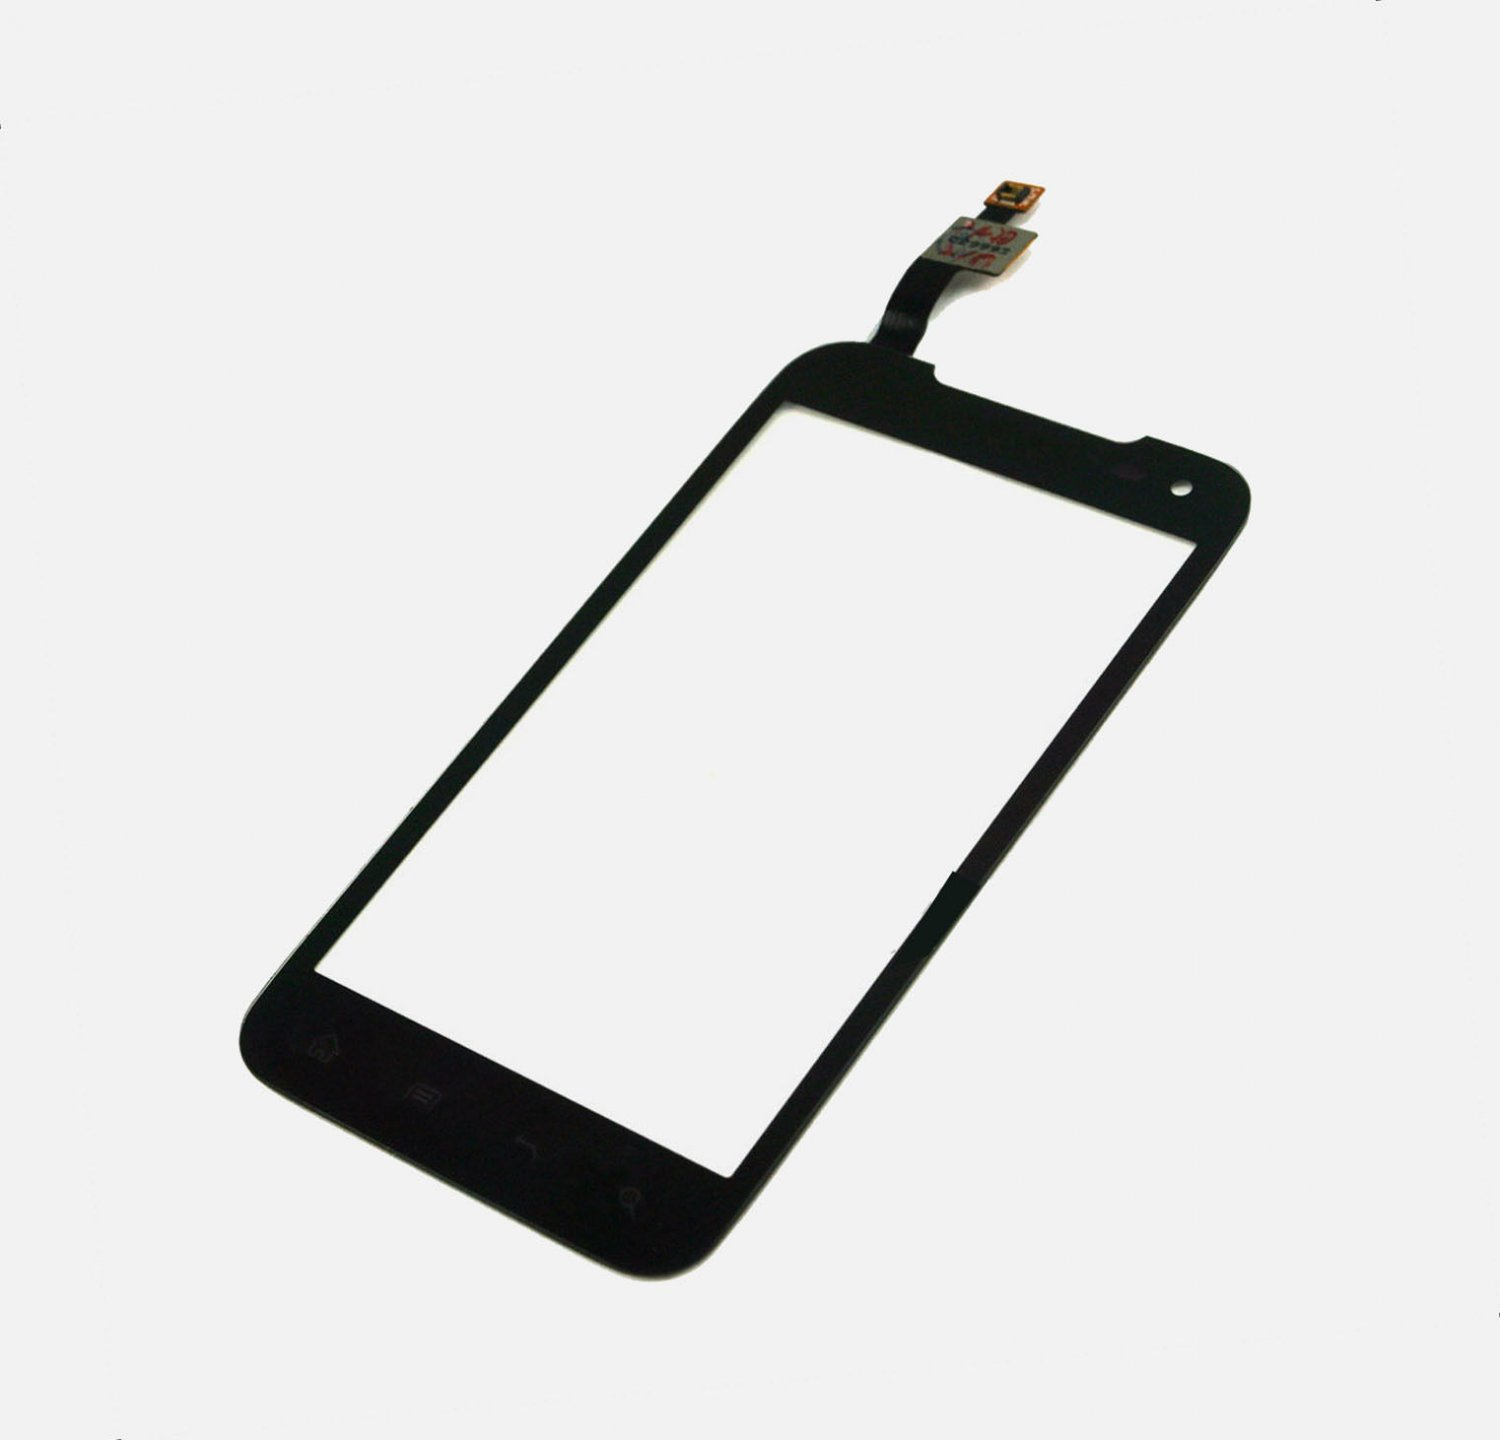 New OEM LG Viper 4G LTE LS840 Touch Glass Lens Panel Screen Digitizer Replacement Parts